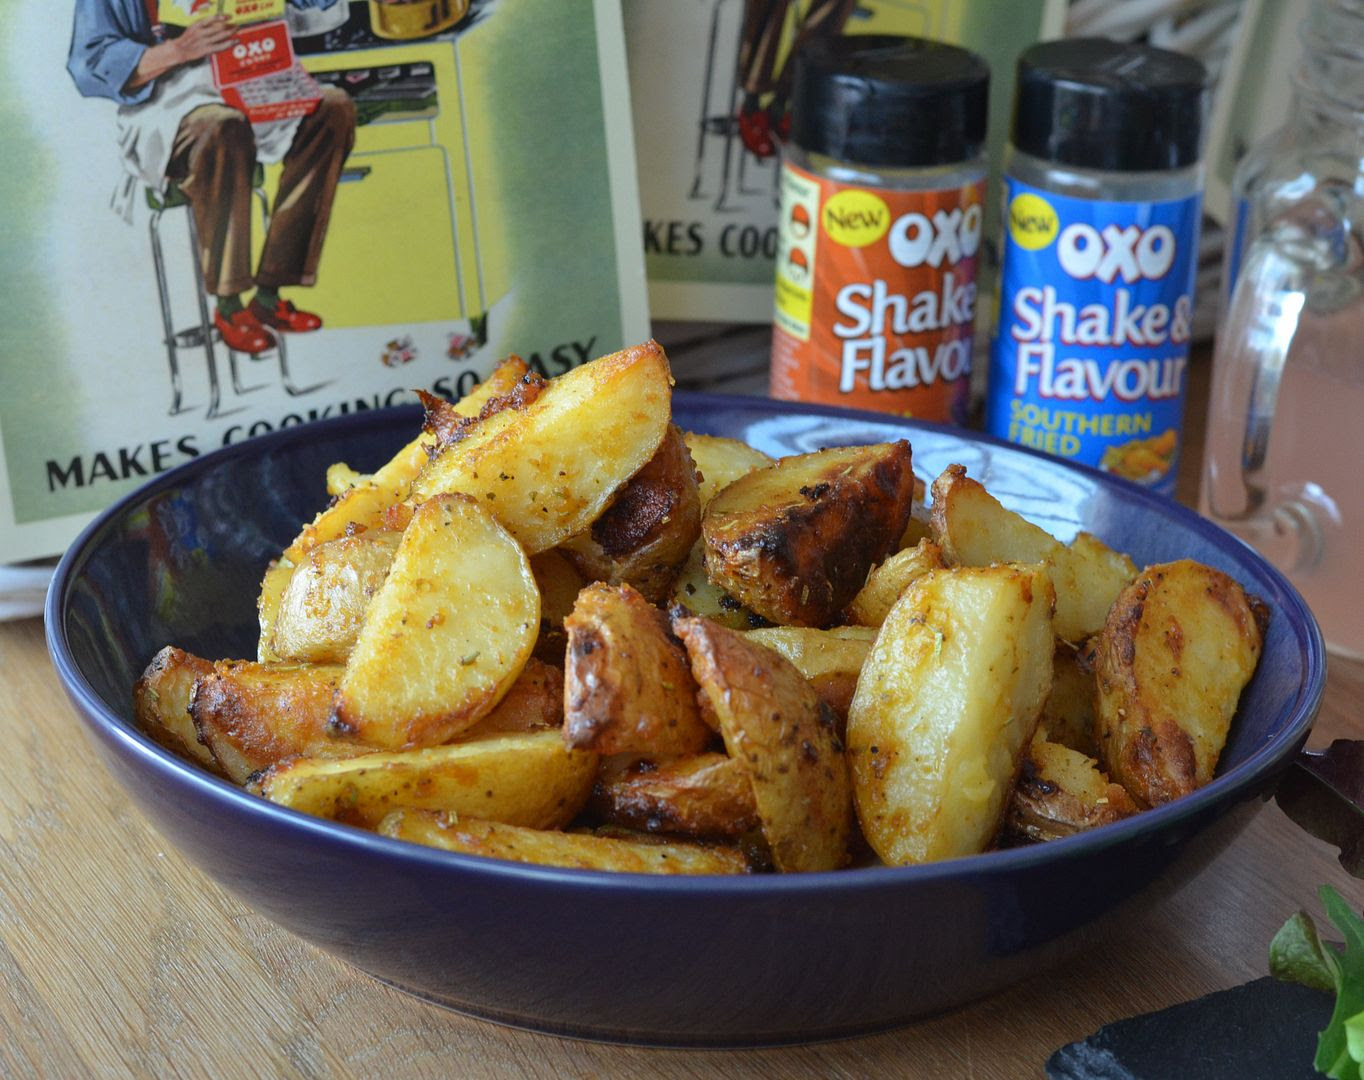 Southern Fried Wedges